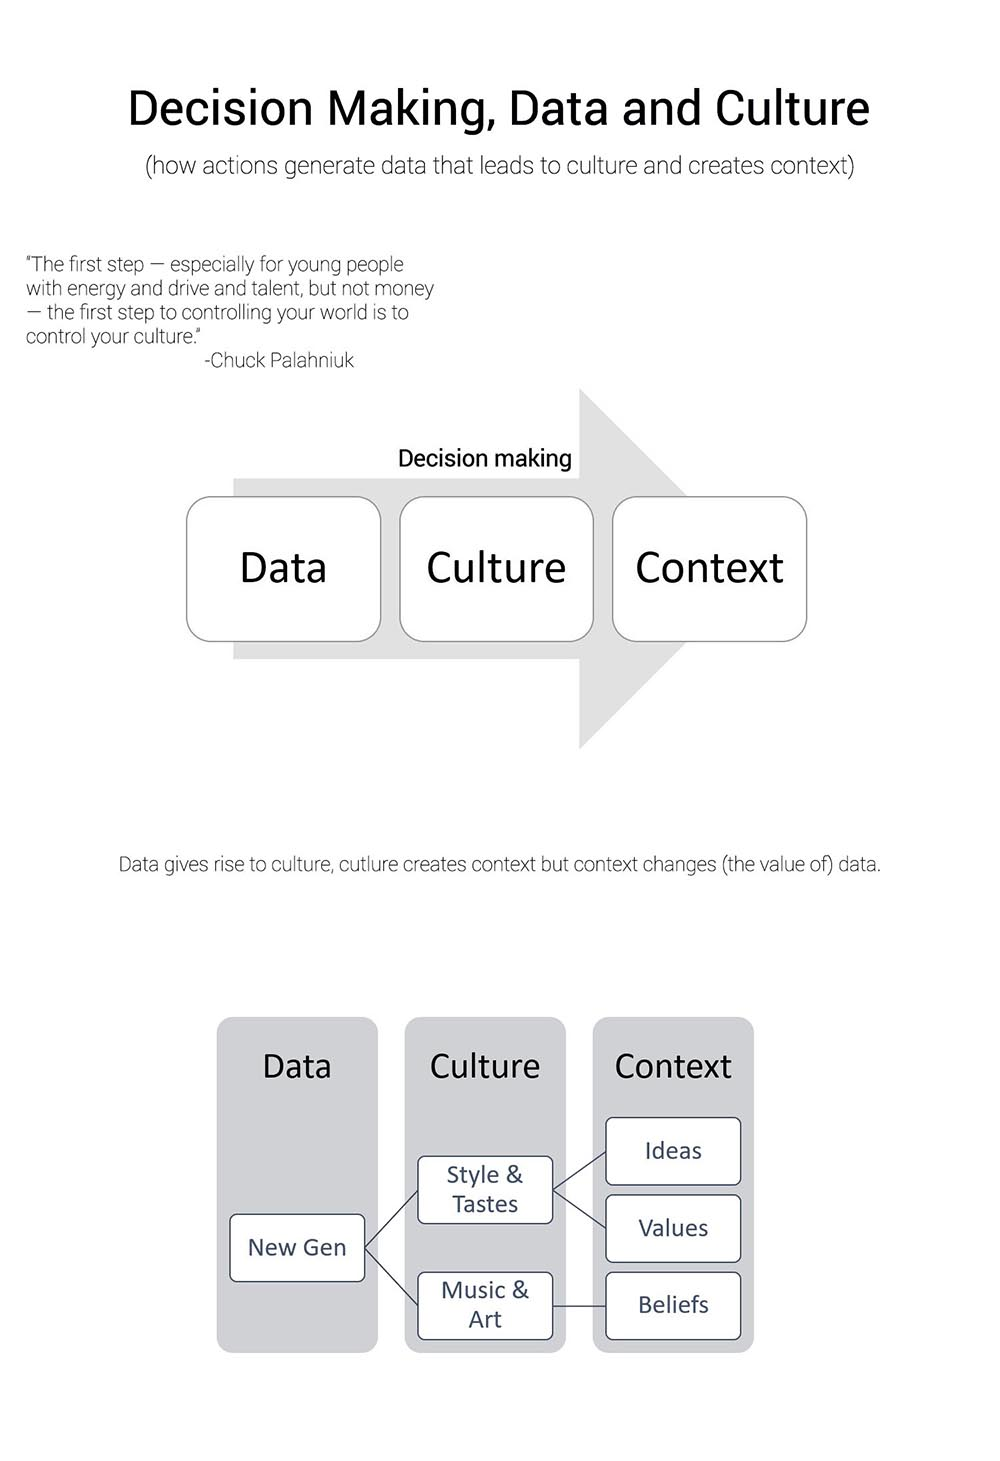 Data, culture and decision making analyzed in detail